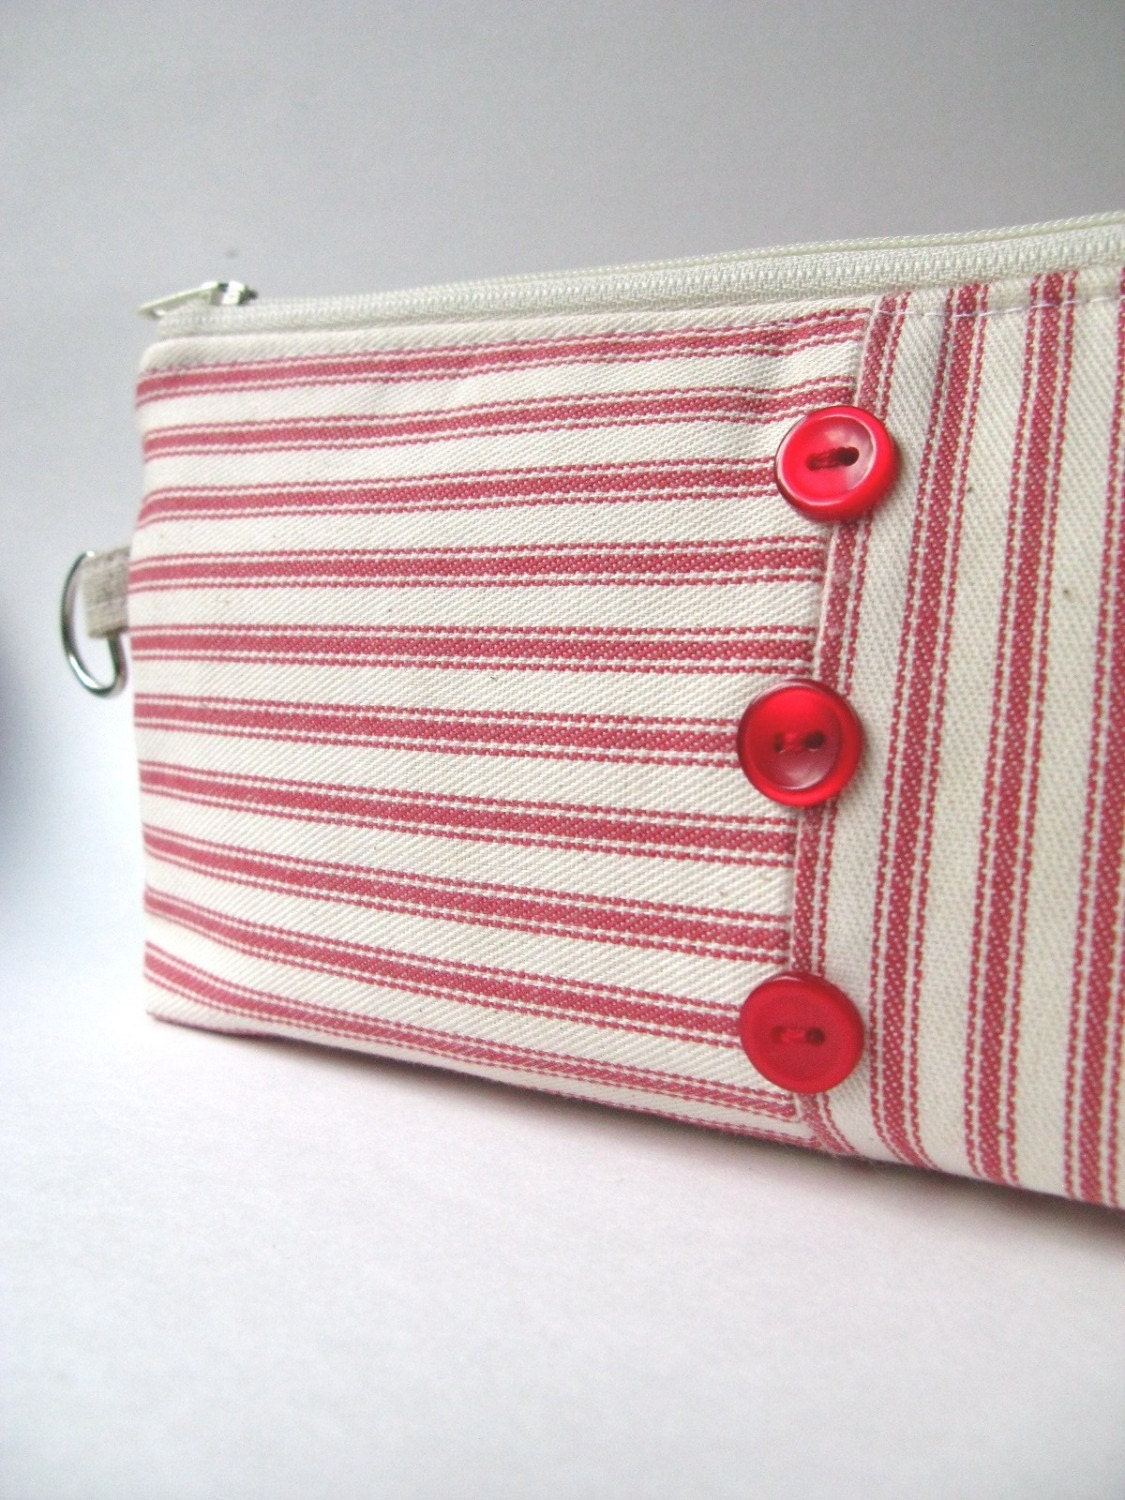 Zipper Clutch Pouch - Nautical Red Stripes with Buttons